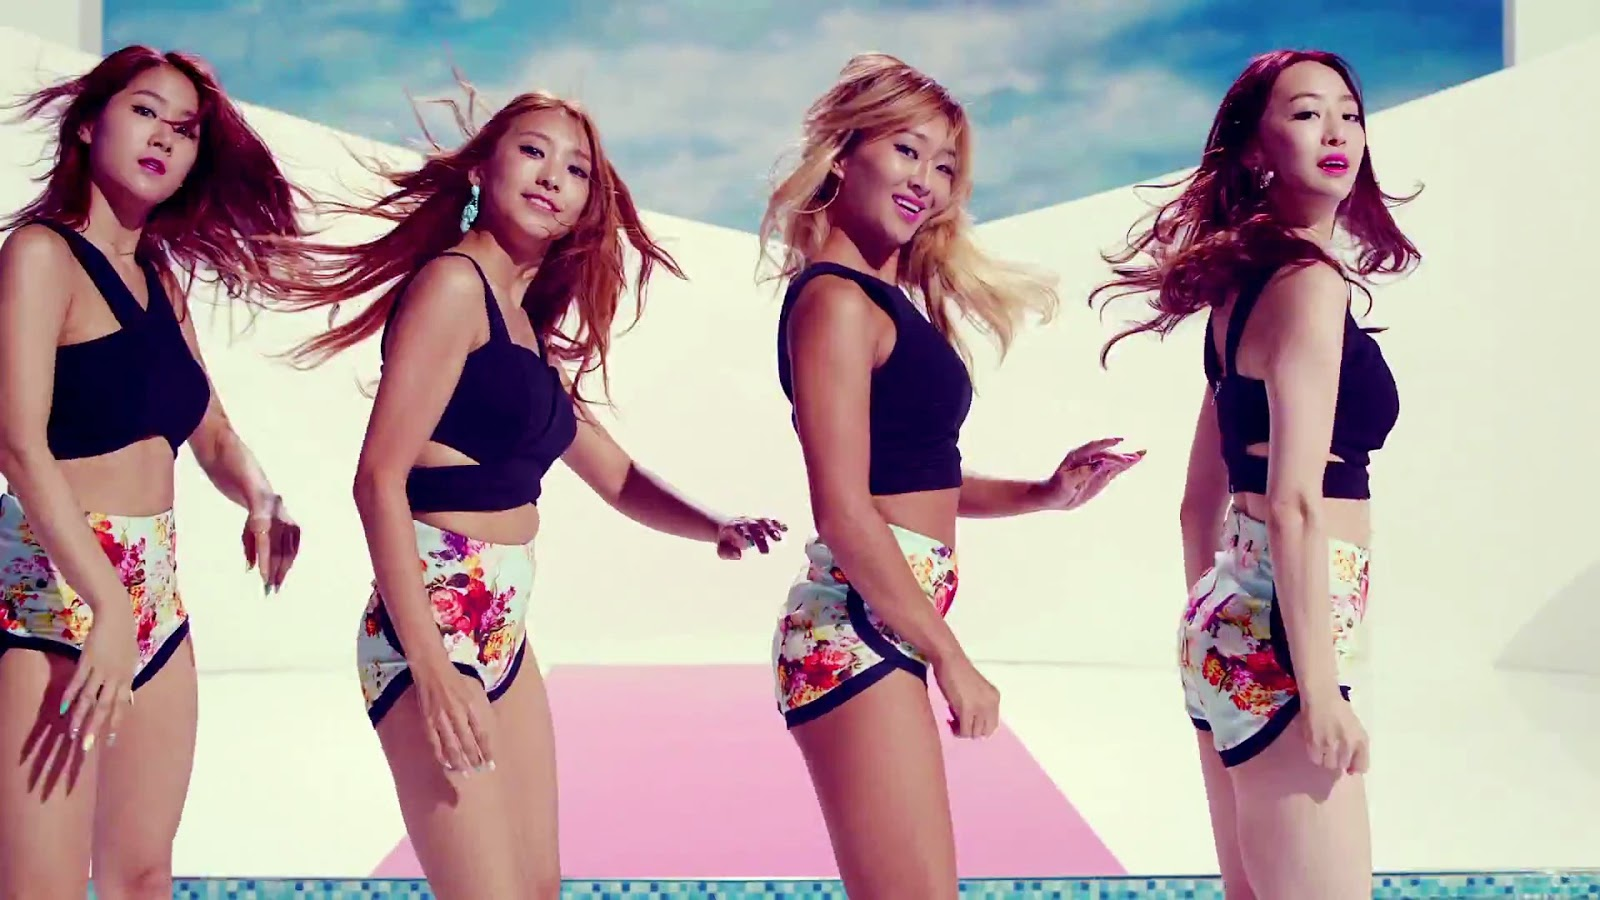 SISTAR Touch My Body Wallpaper HD